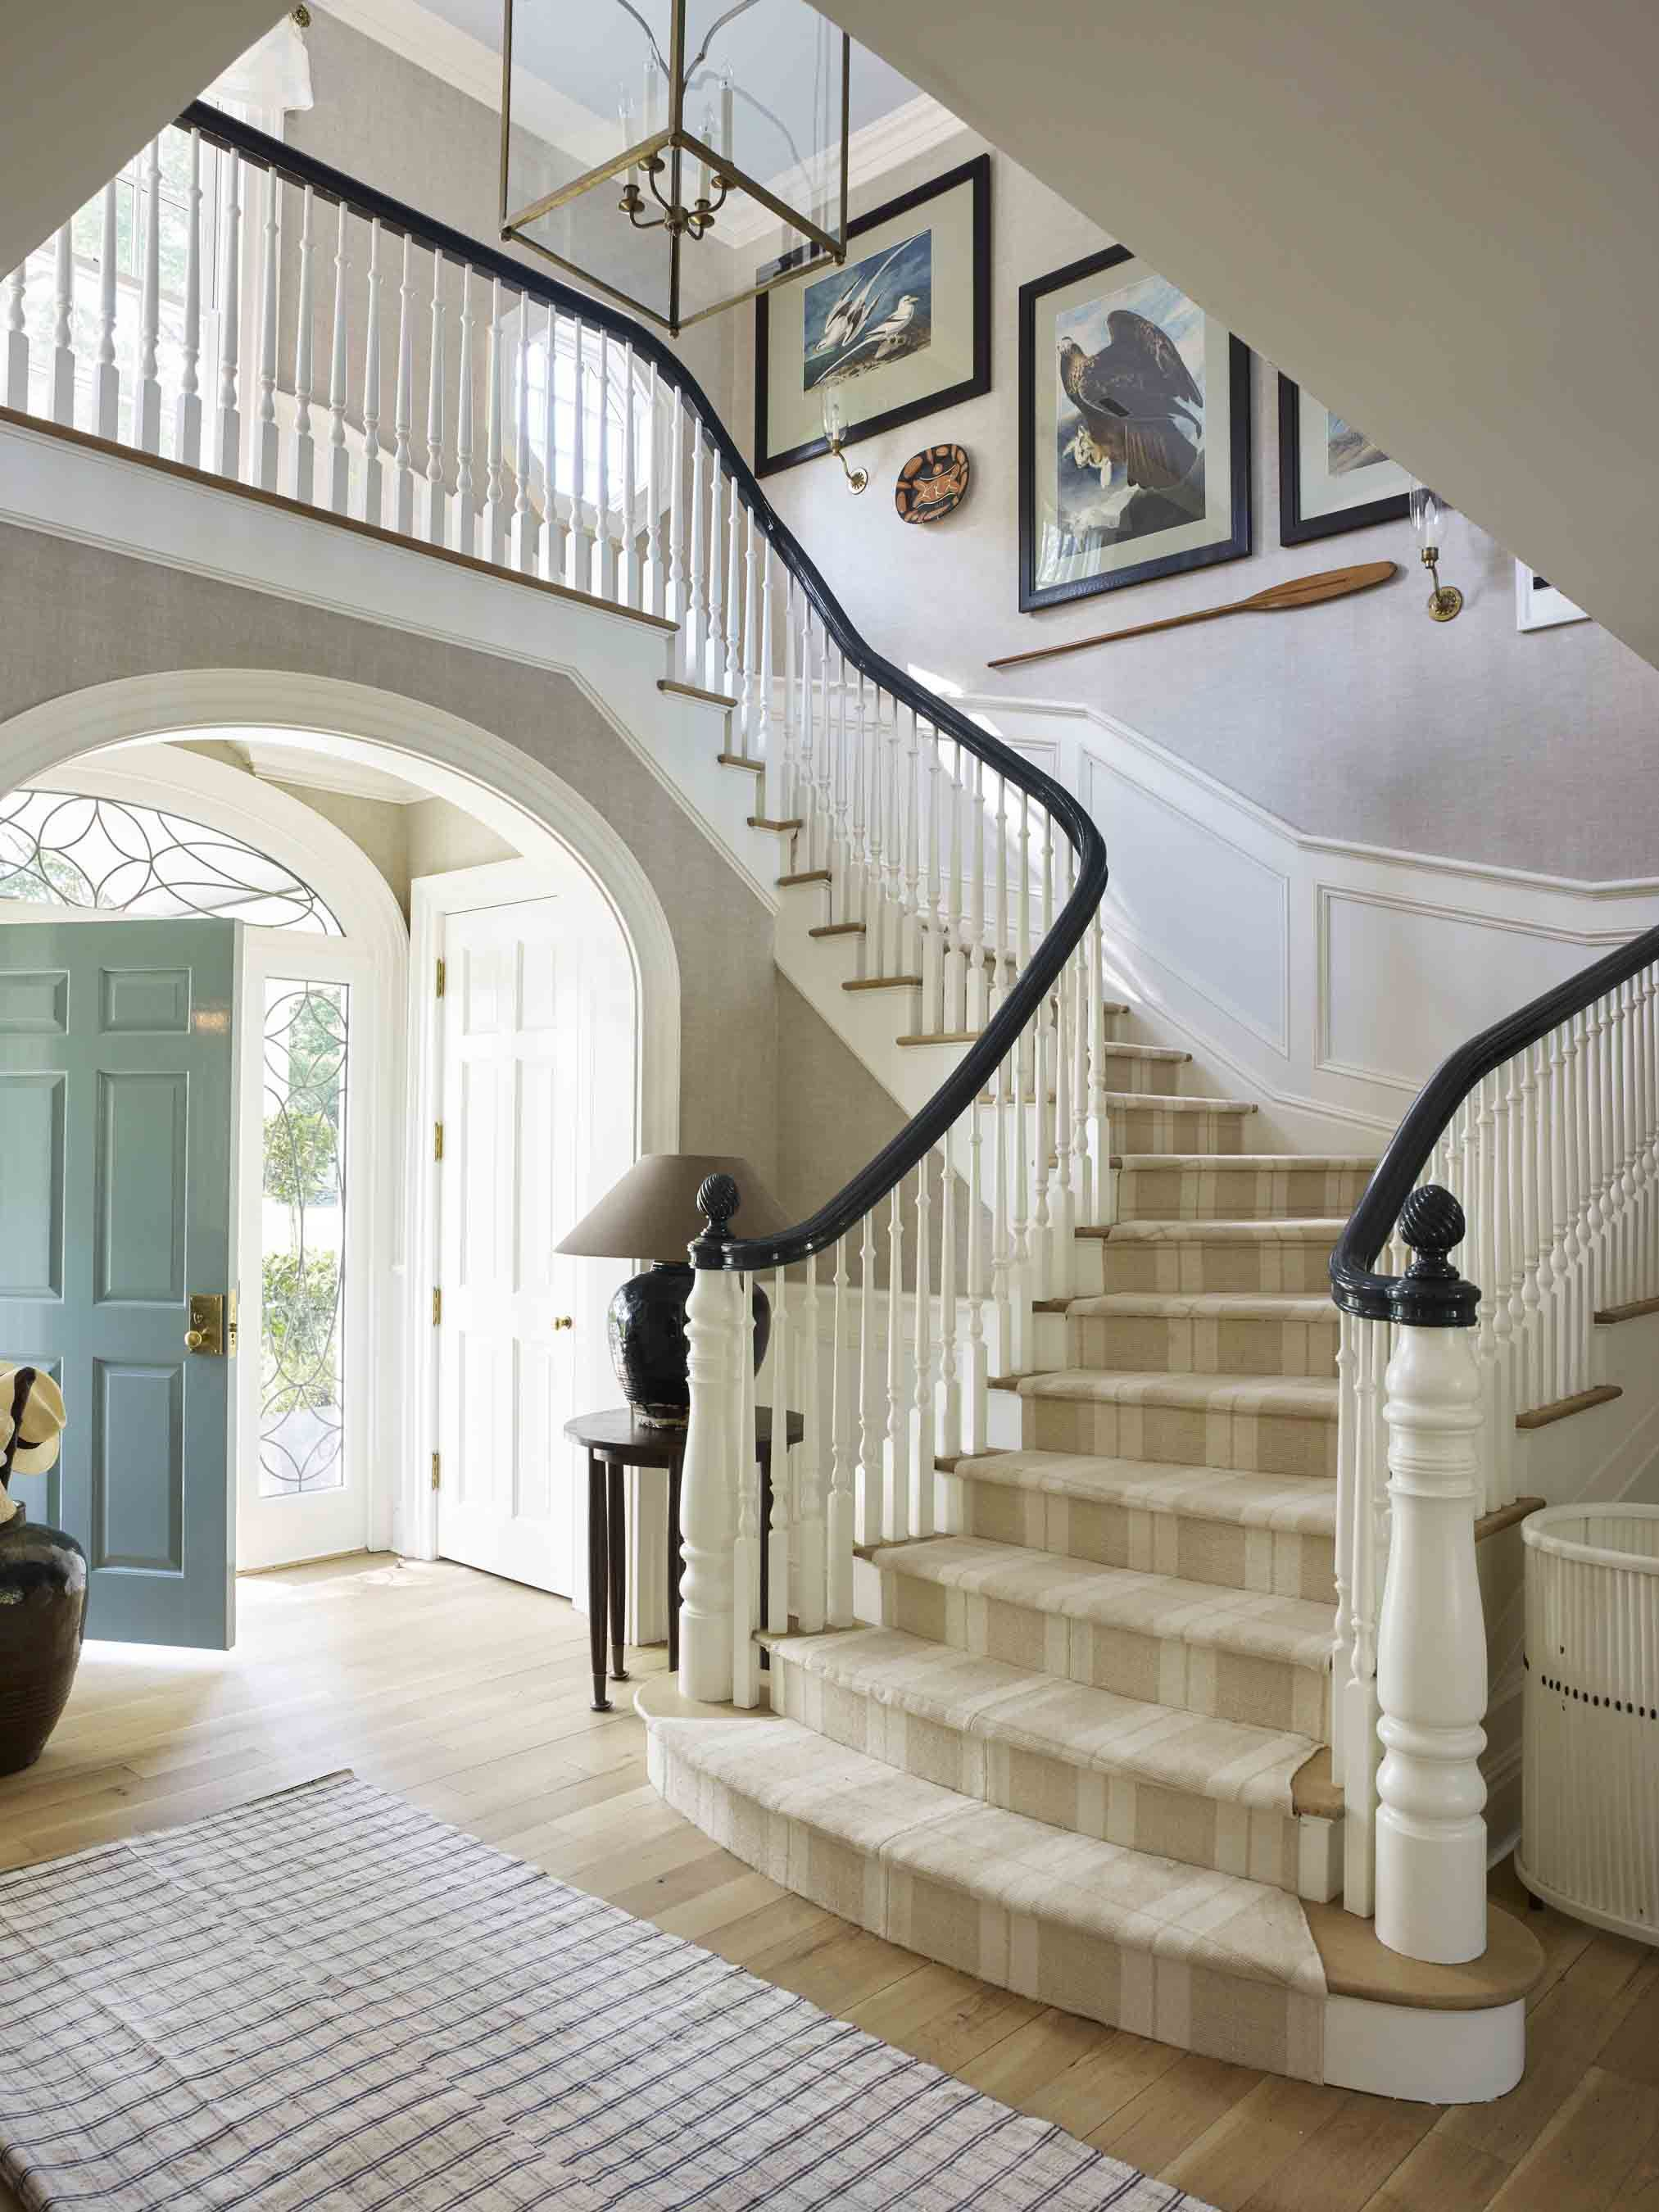 45 Best Staircases Ideas 2021 Gorgeous Staircase Home Designs